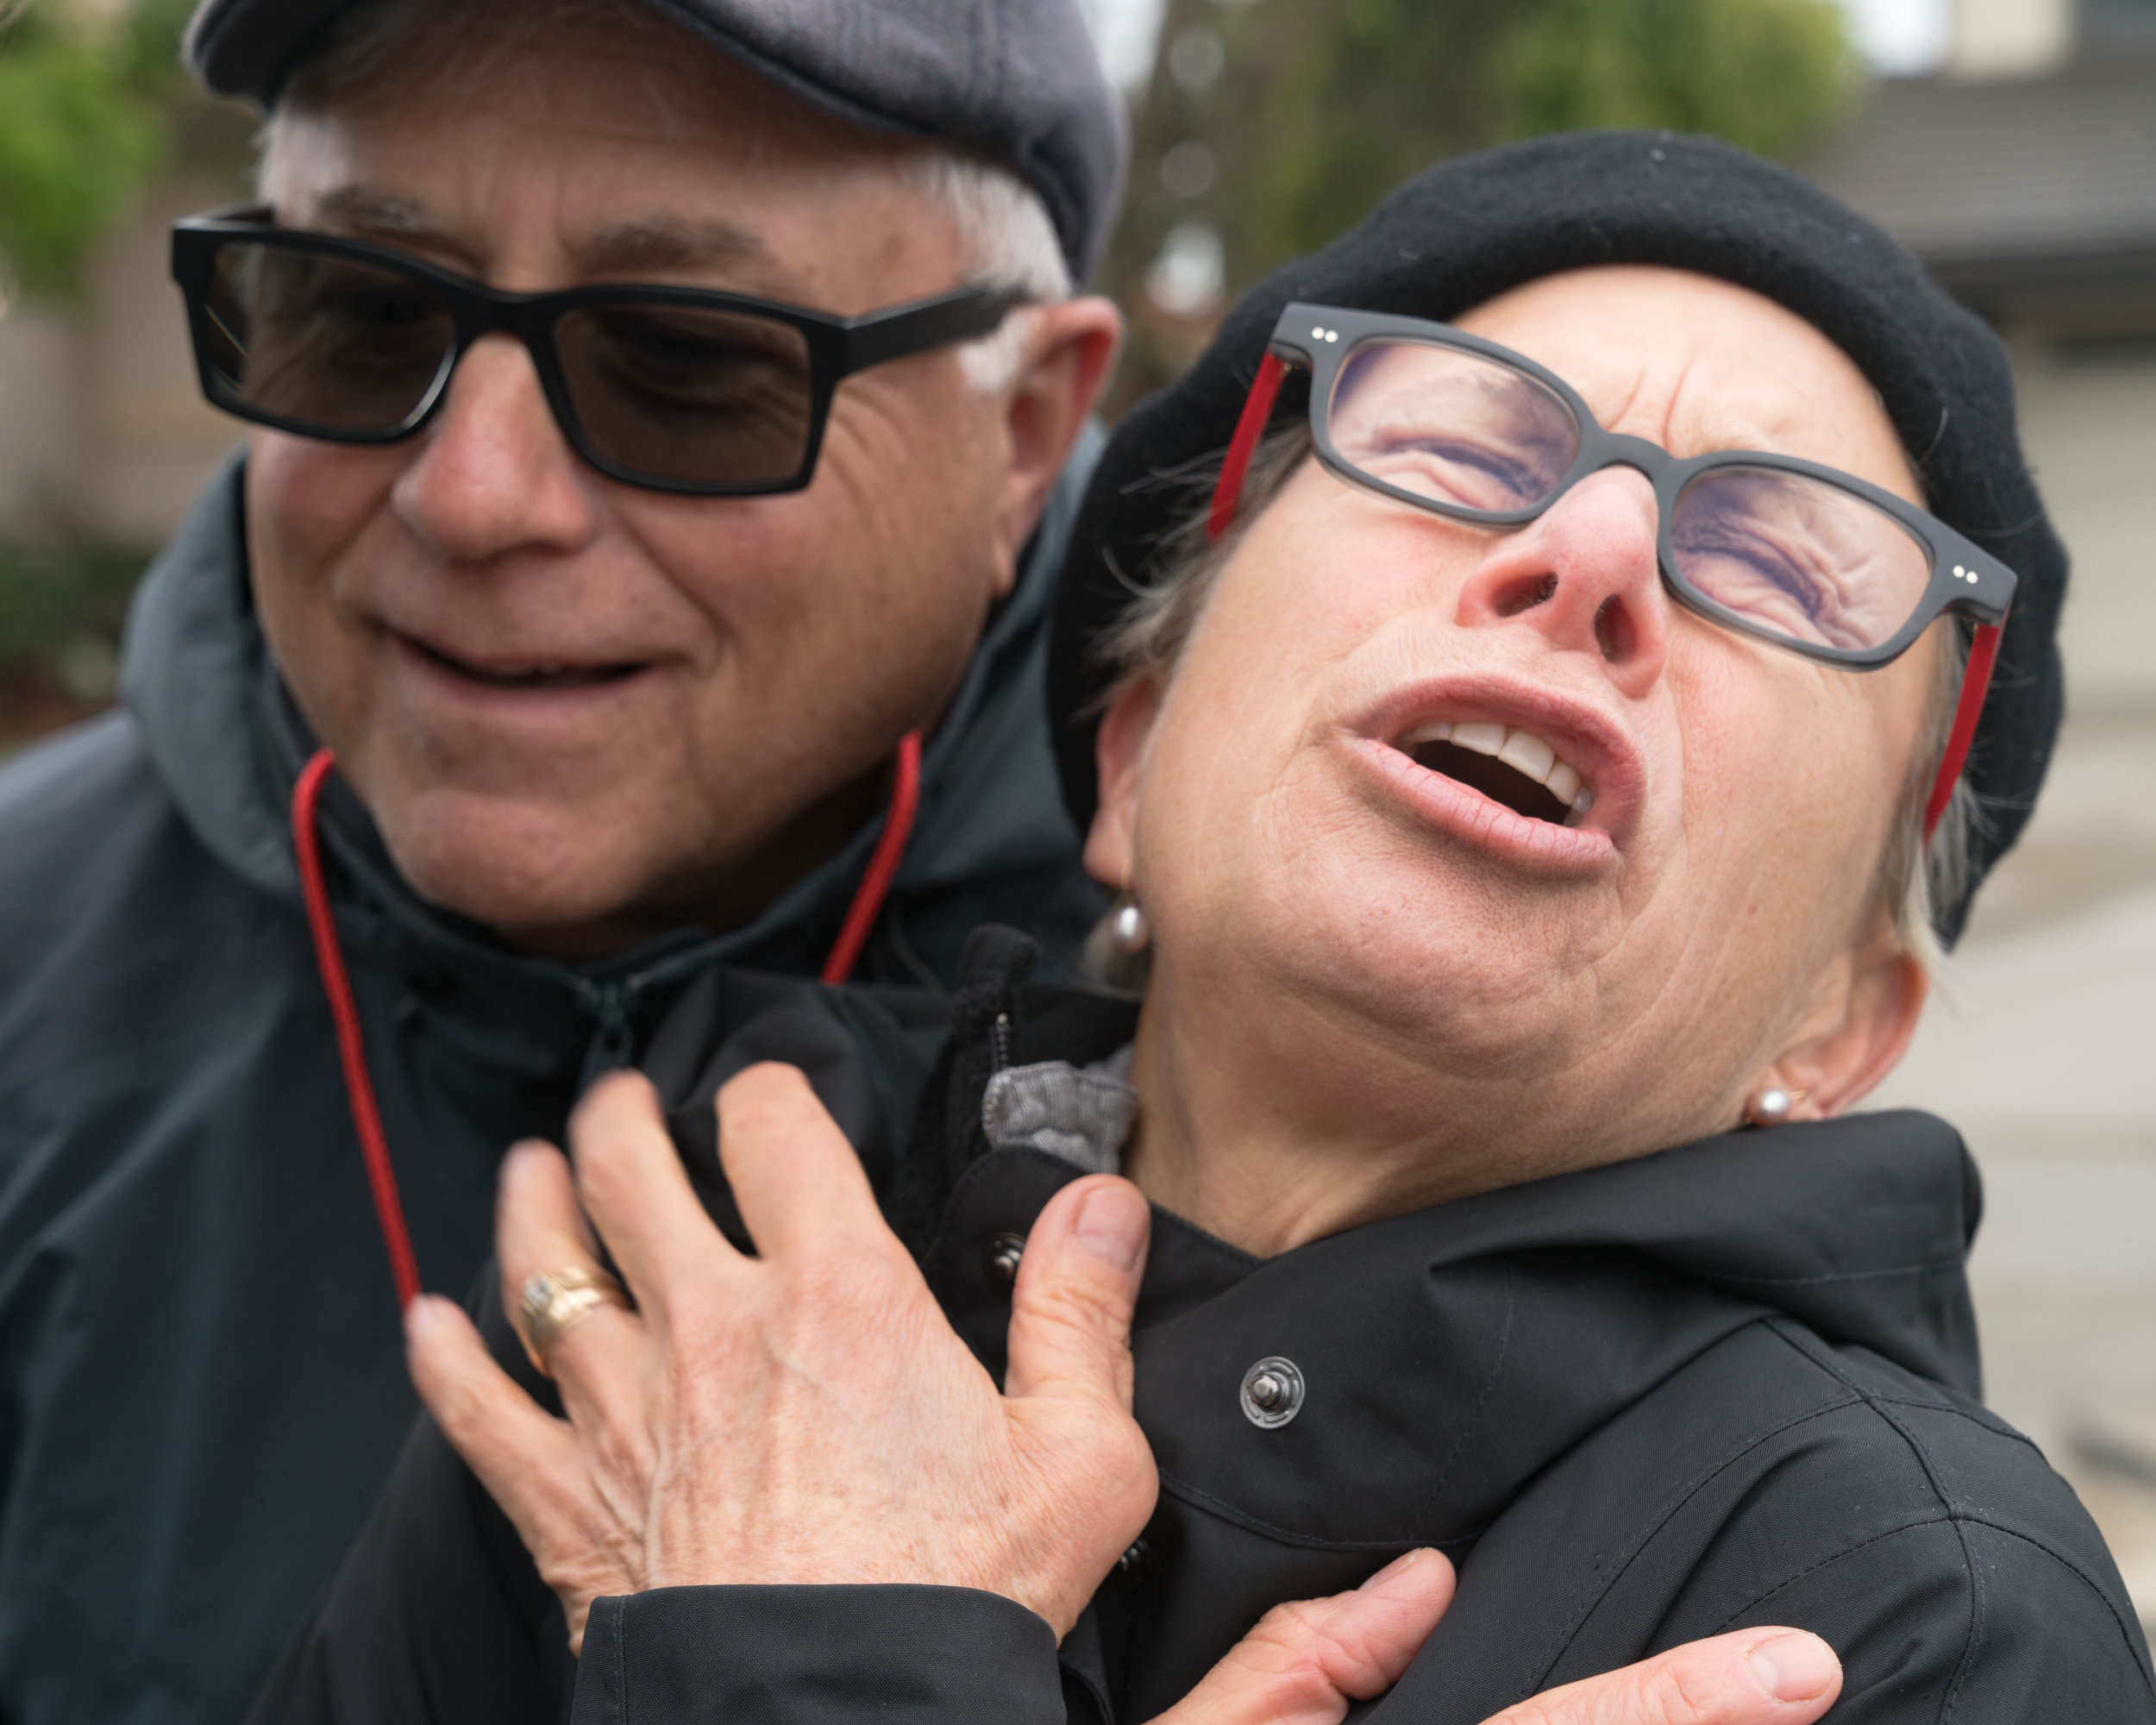 """Kim Cheselka (right) and her husband Mitch Dubin (left) came to protest President Trump's arrival in Santa Monica, California on Tuesday, March 13, 2018. Cheselka grimaced as she recalled seeing Trump wave at the crowd as he drove by in his motorcade. """"I'm so grossed out,"""" Cheselka said. """"You see him on TV, but to actually see him in person I had a visceral response and it was negative."""" """"You yelped,"""" her husband said. """"You said you weren't going to be able to sleep tonight."""" (Helena Sung / Corsair Photo)"""